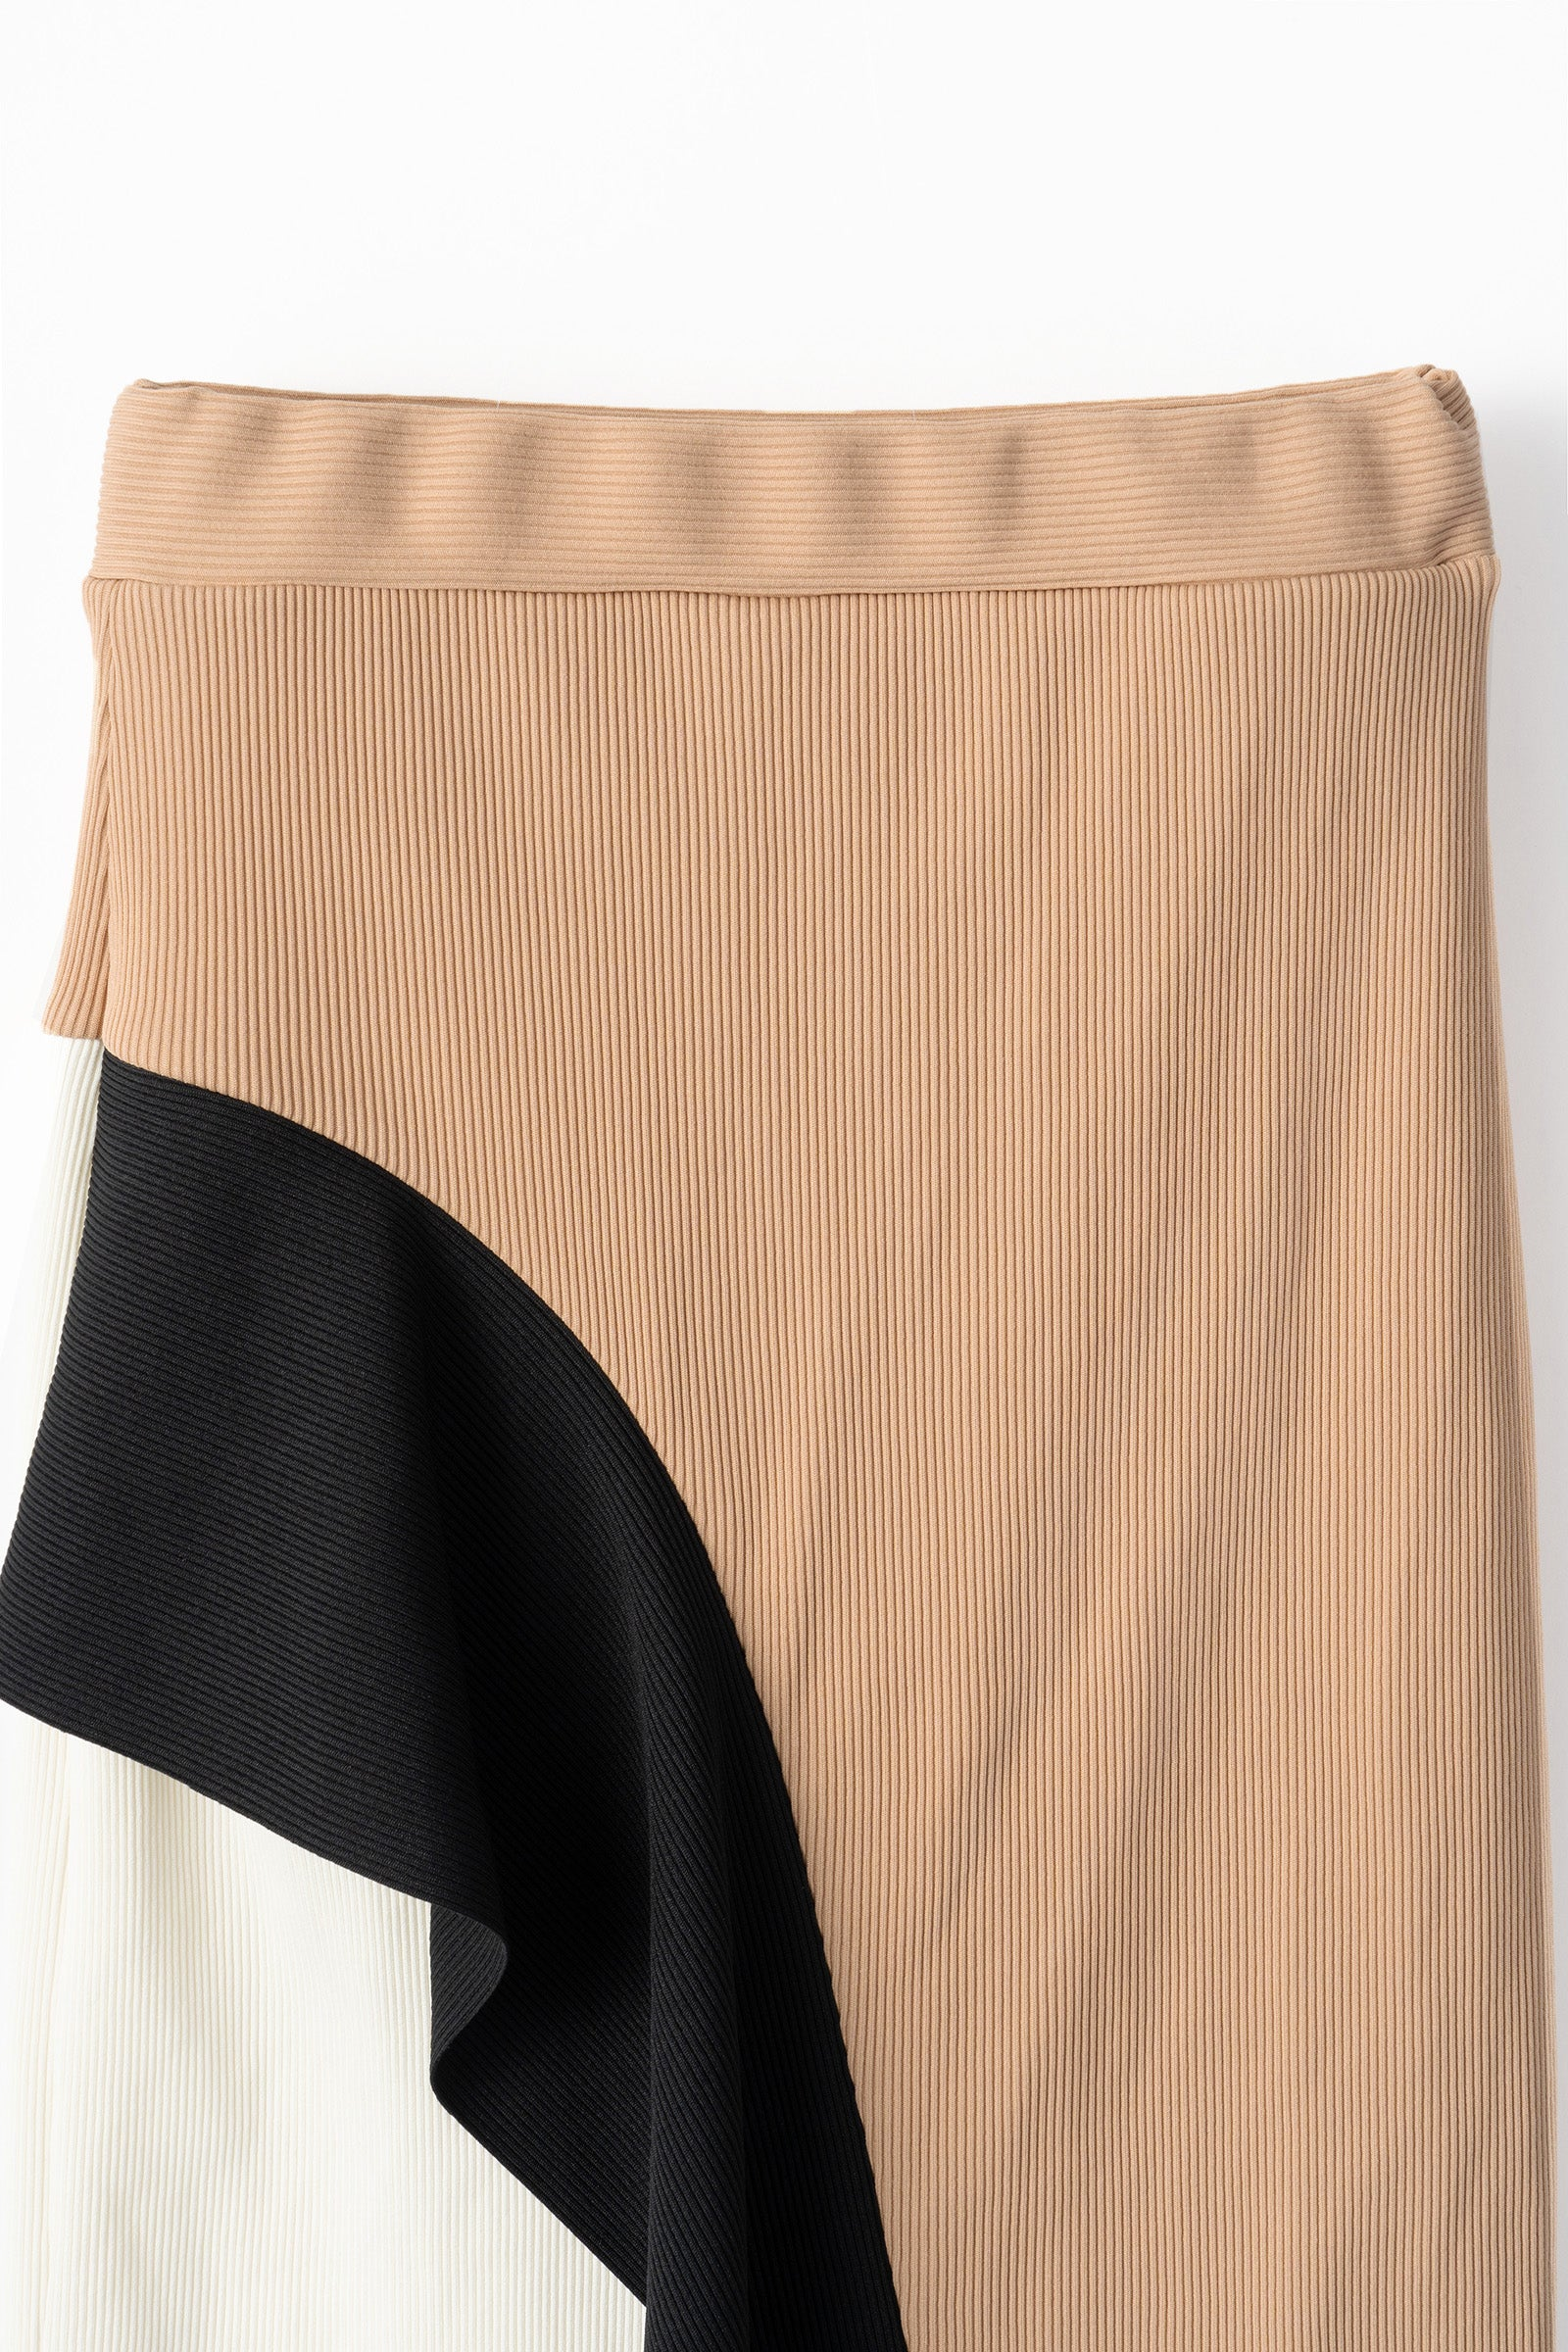 MURRAL bi-color rib skirt (white / beige)